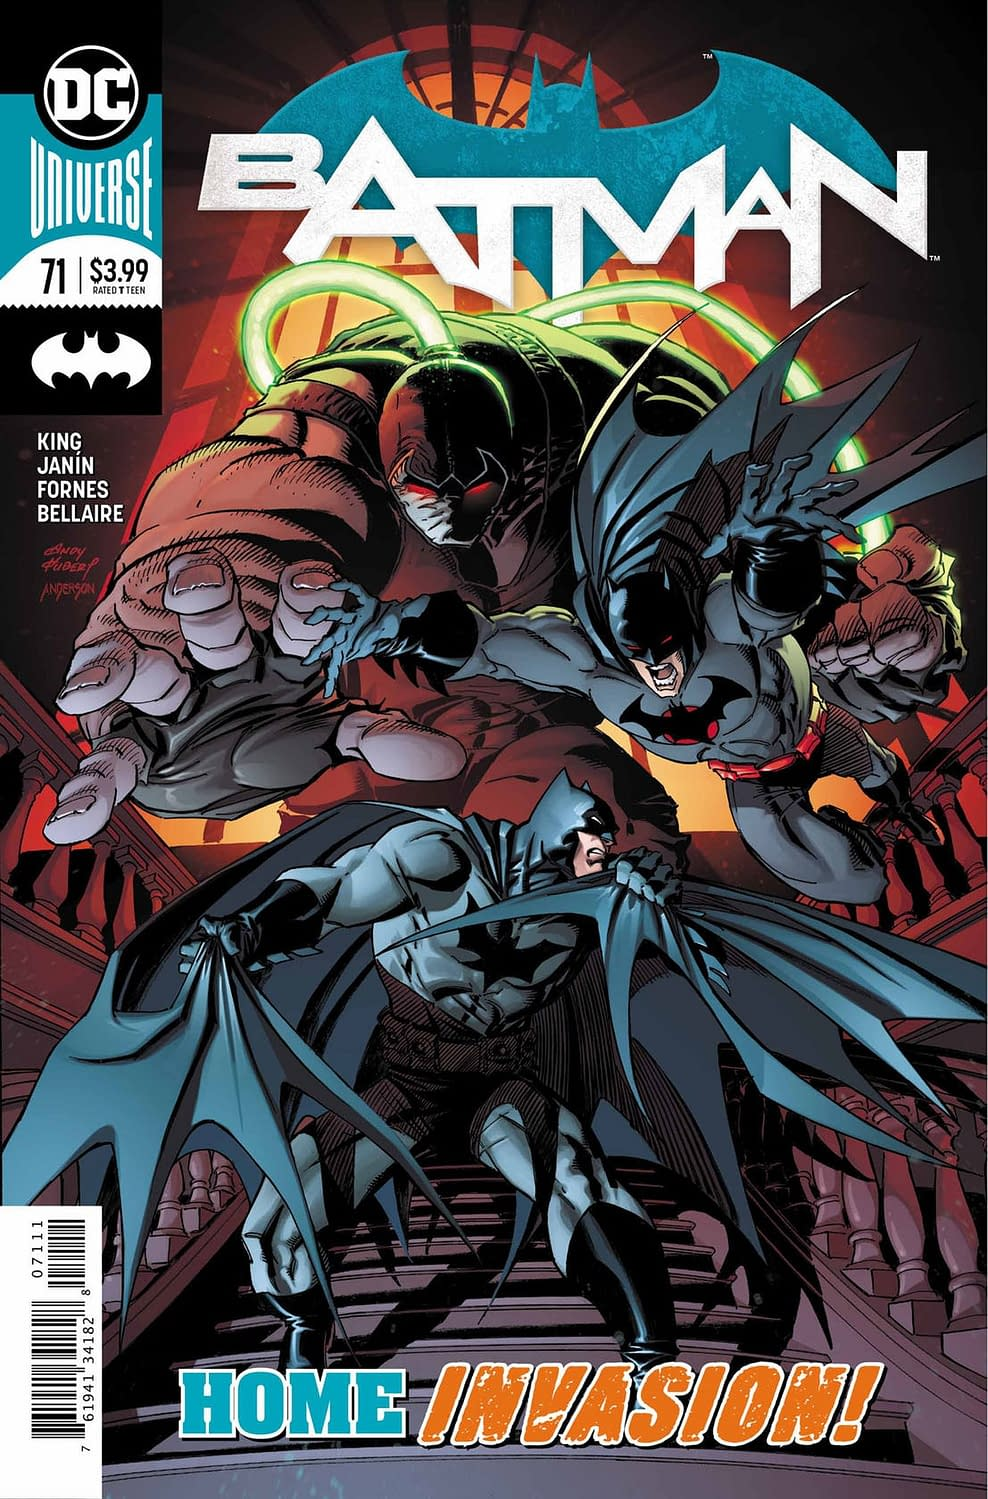 Batman is a Jerk in this Batman #71 Preview